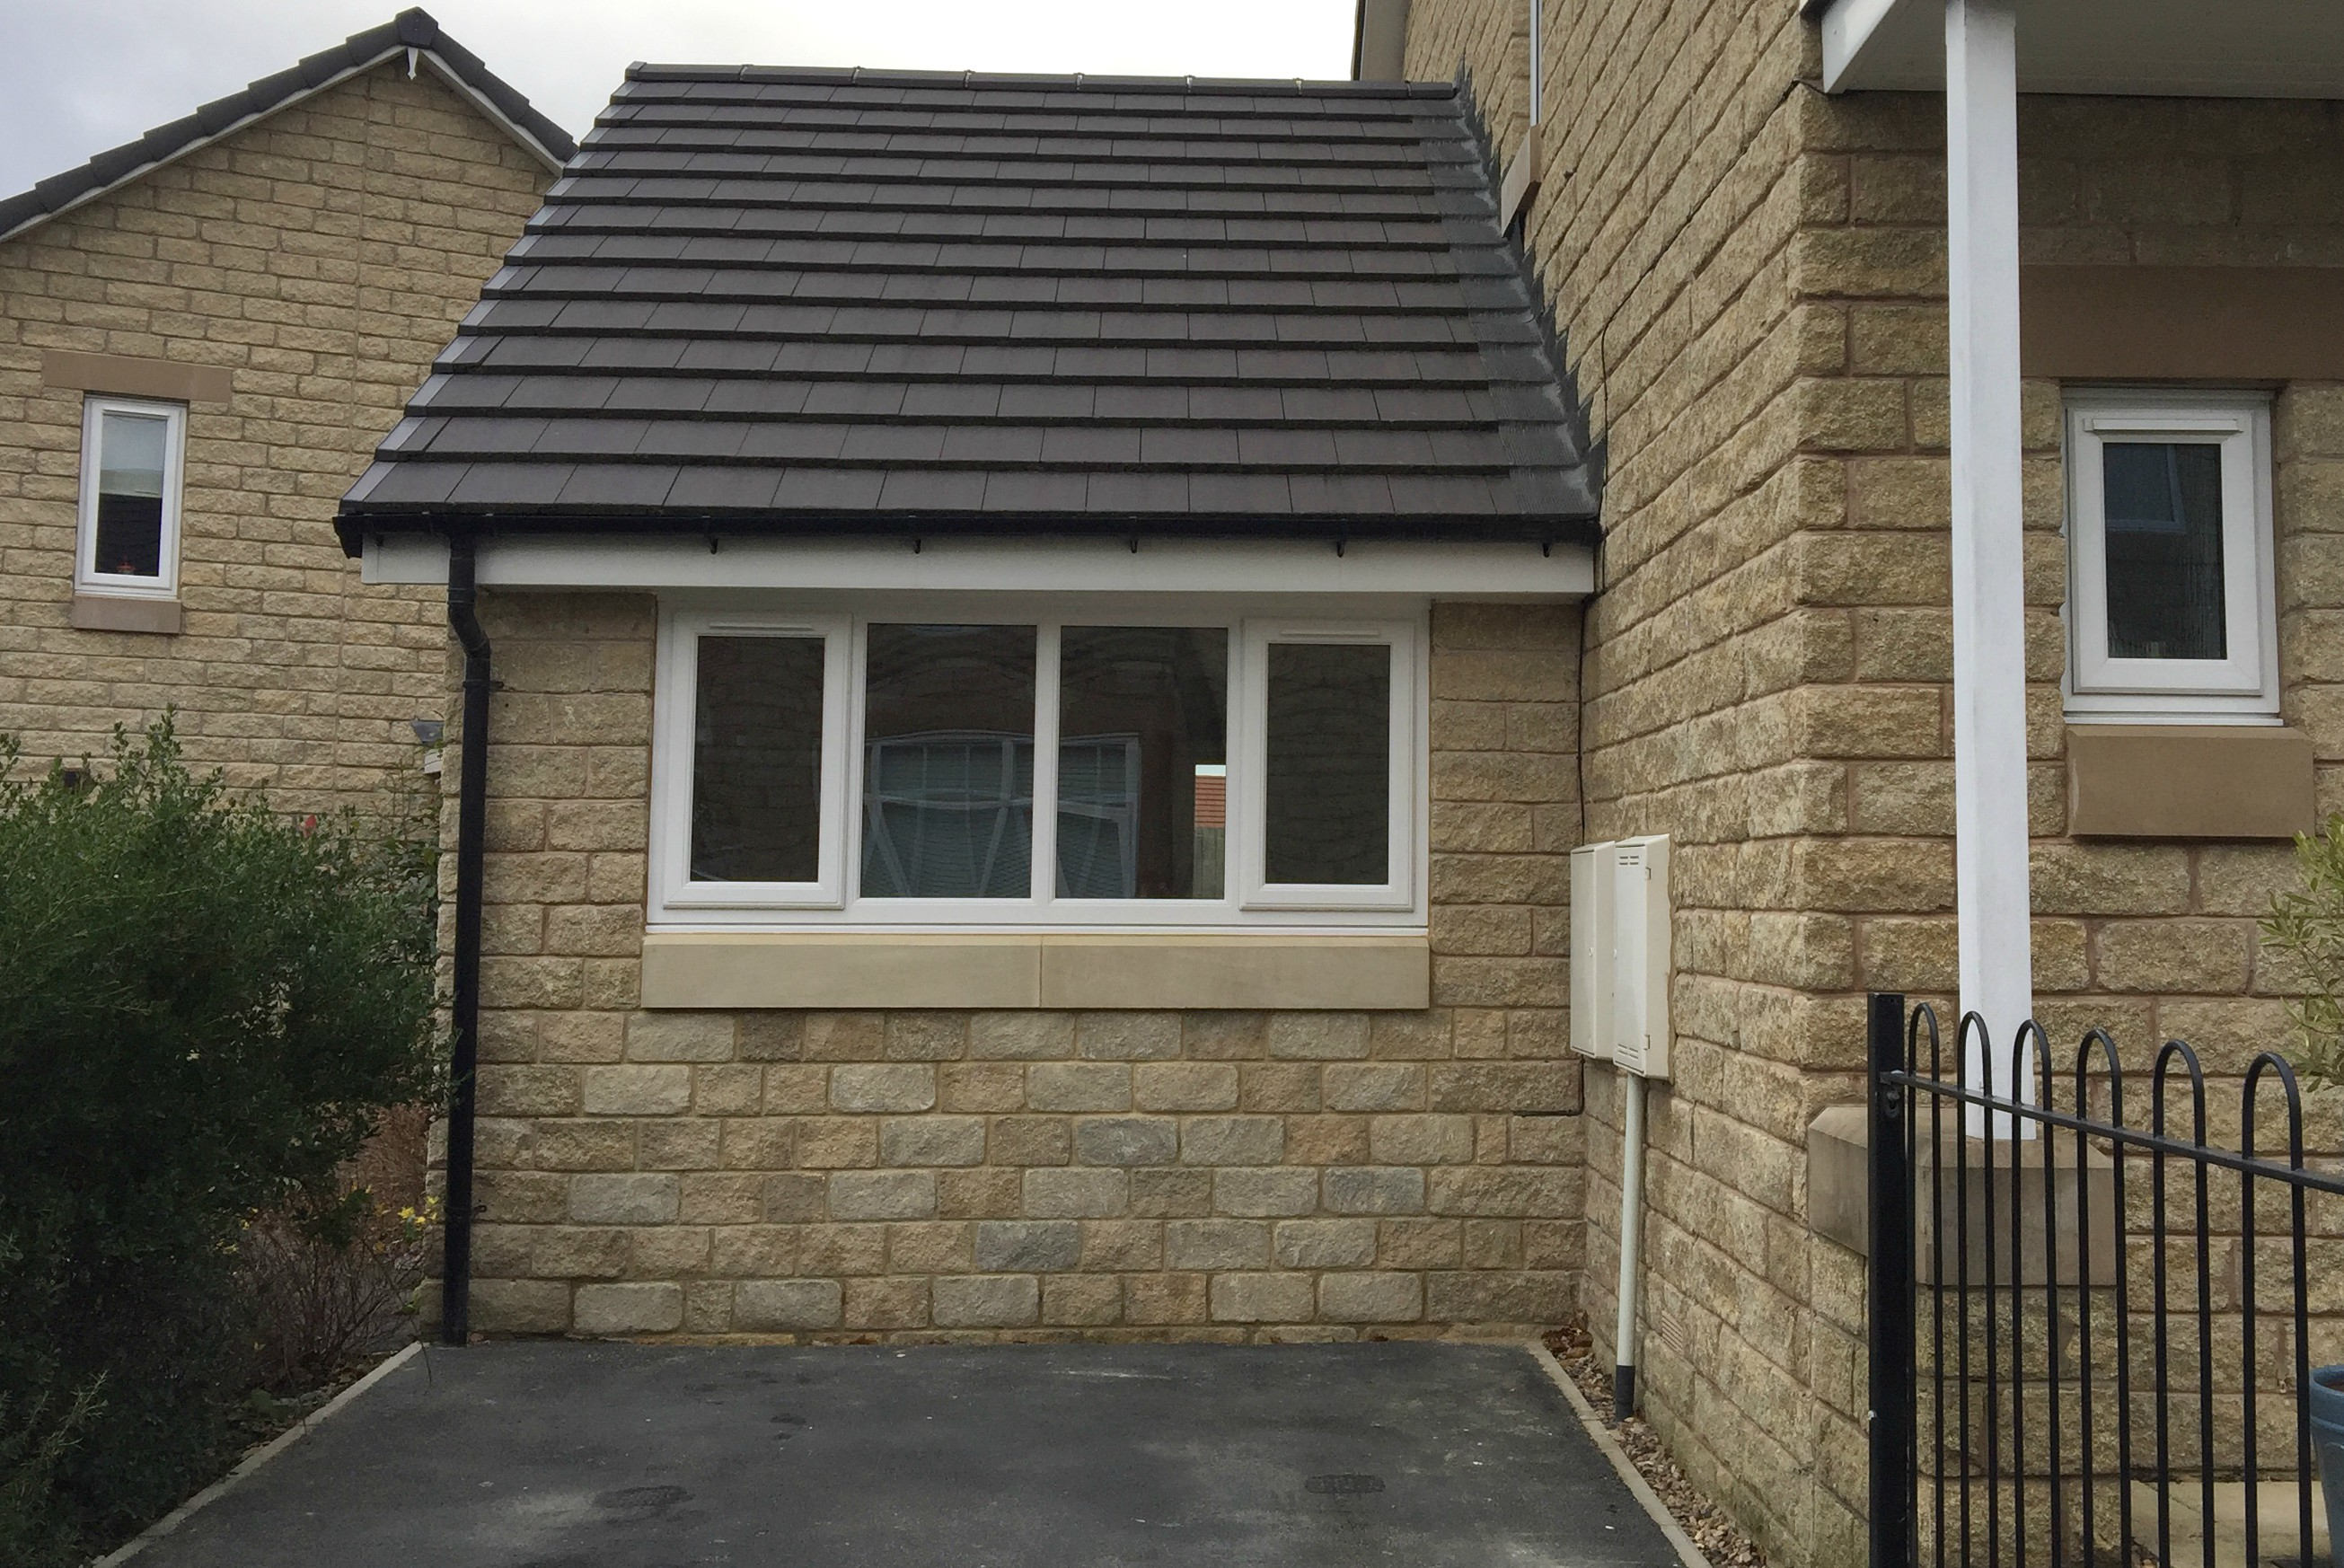 Garage conversion from outside